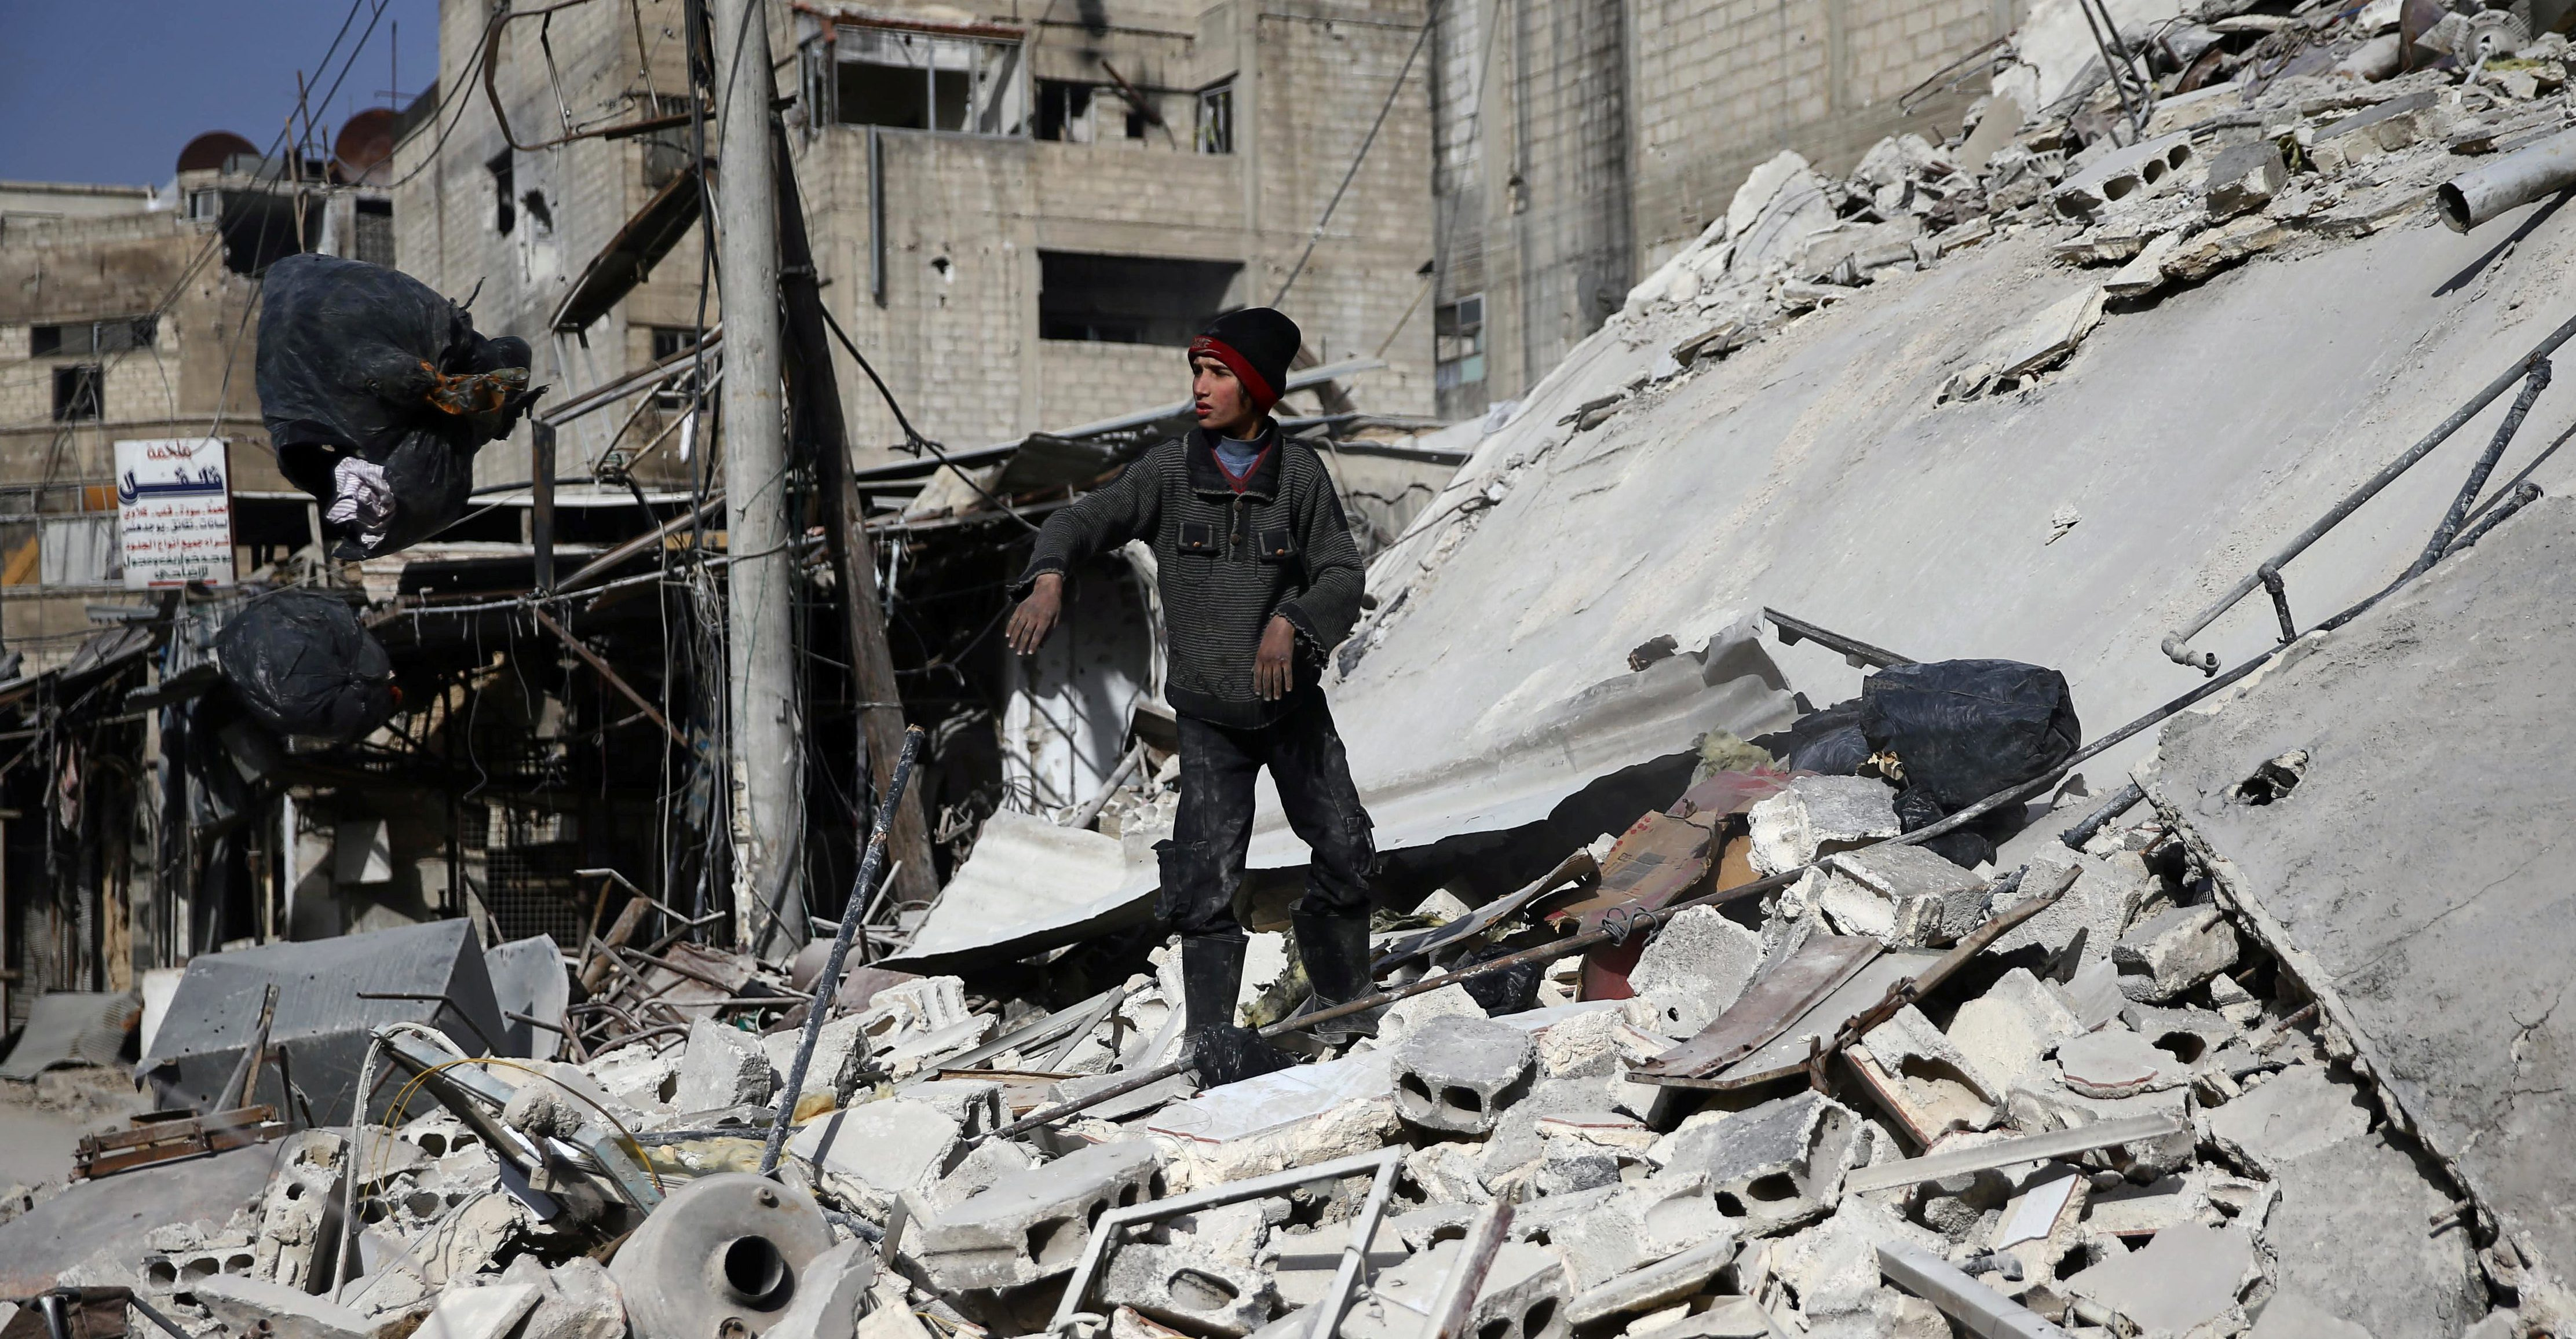 Wanted: A strategy for stabilizing Syria